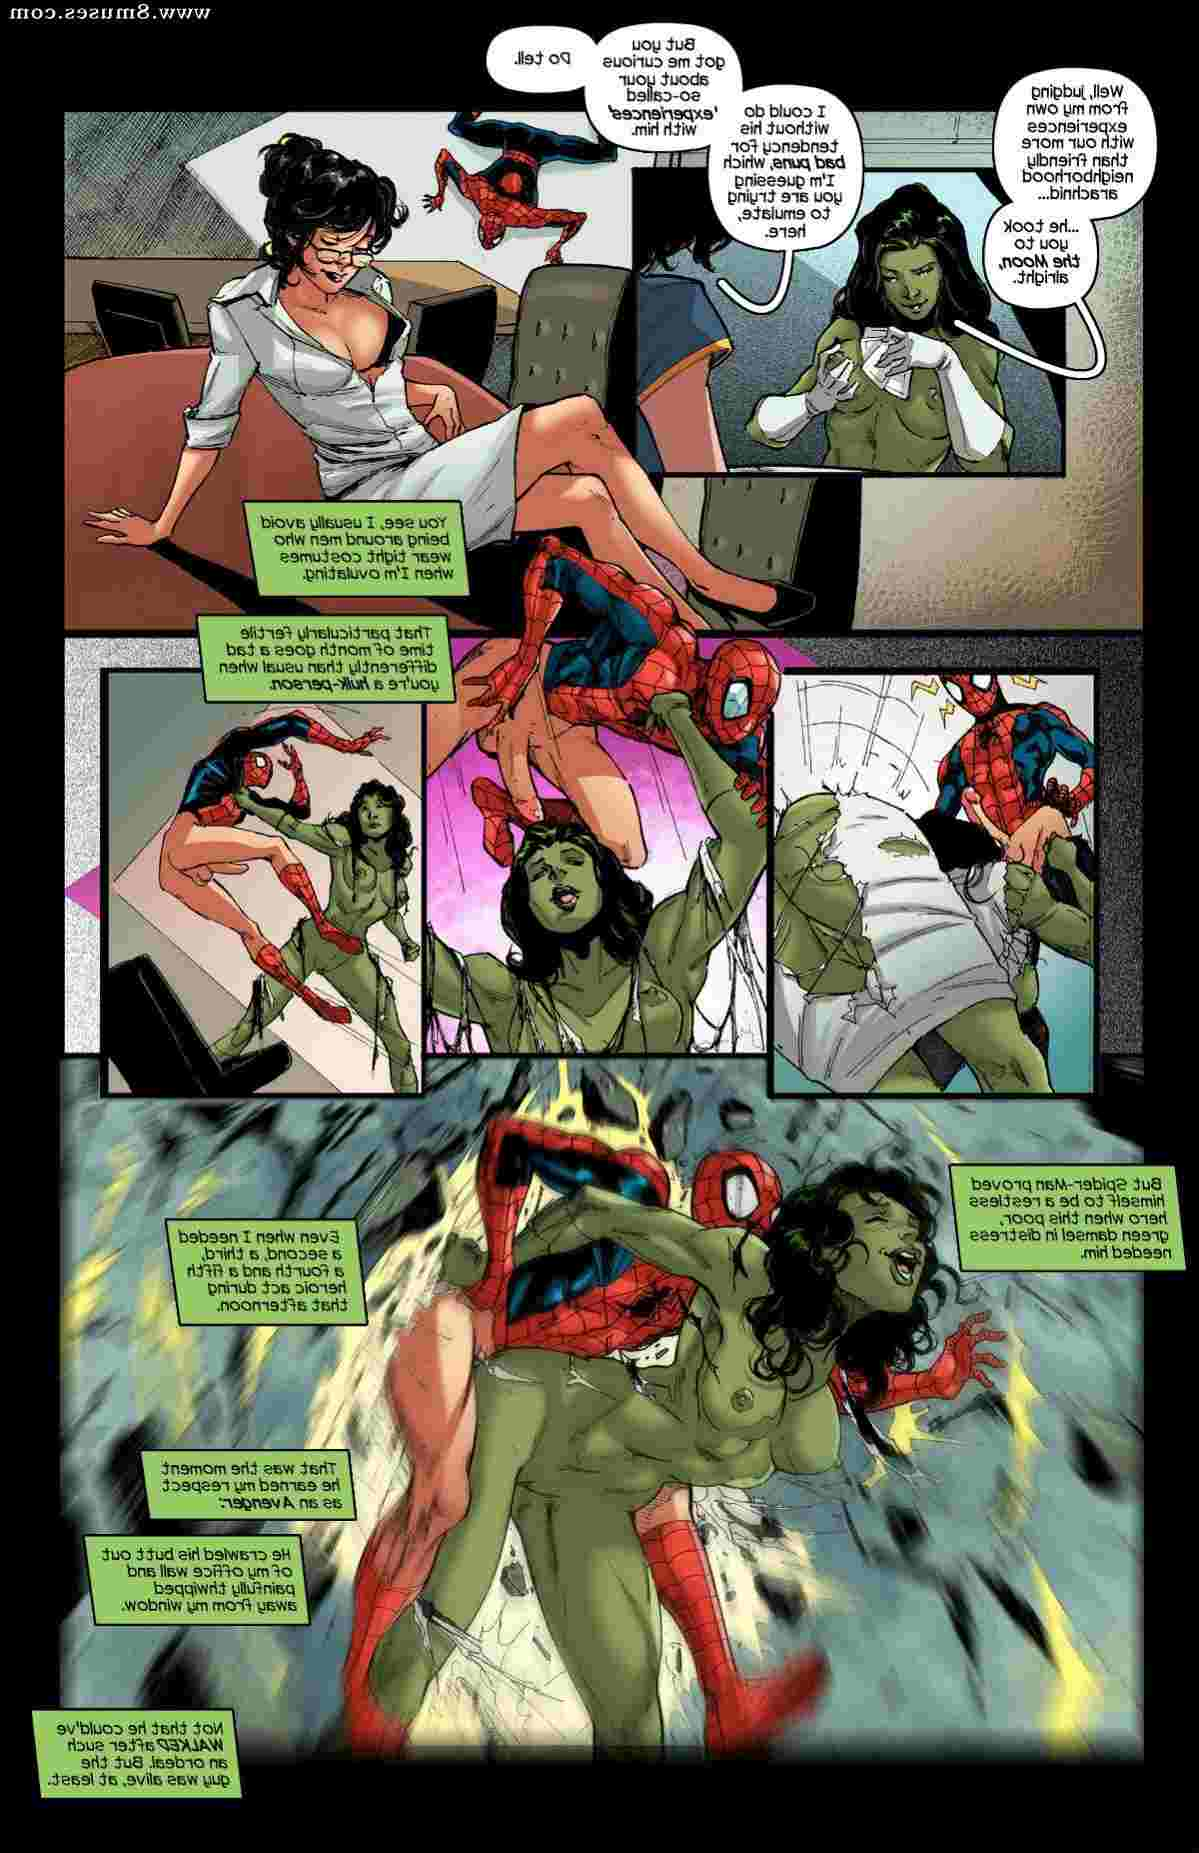 Tracy-Scops-Comics/A-Force-Strip-Poker-Stars A-Force_-_Strip_Poker_Stars__8muses_-_Sex_and_Porn_Comics_5.jpg